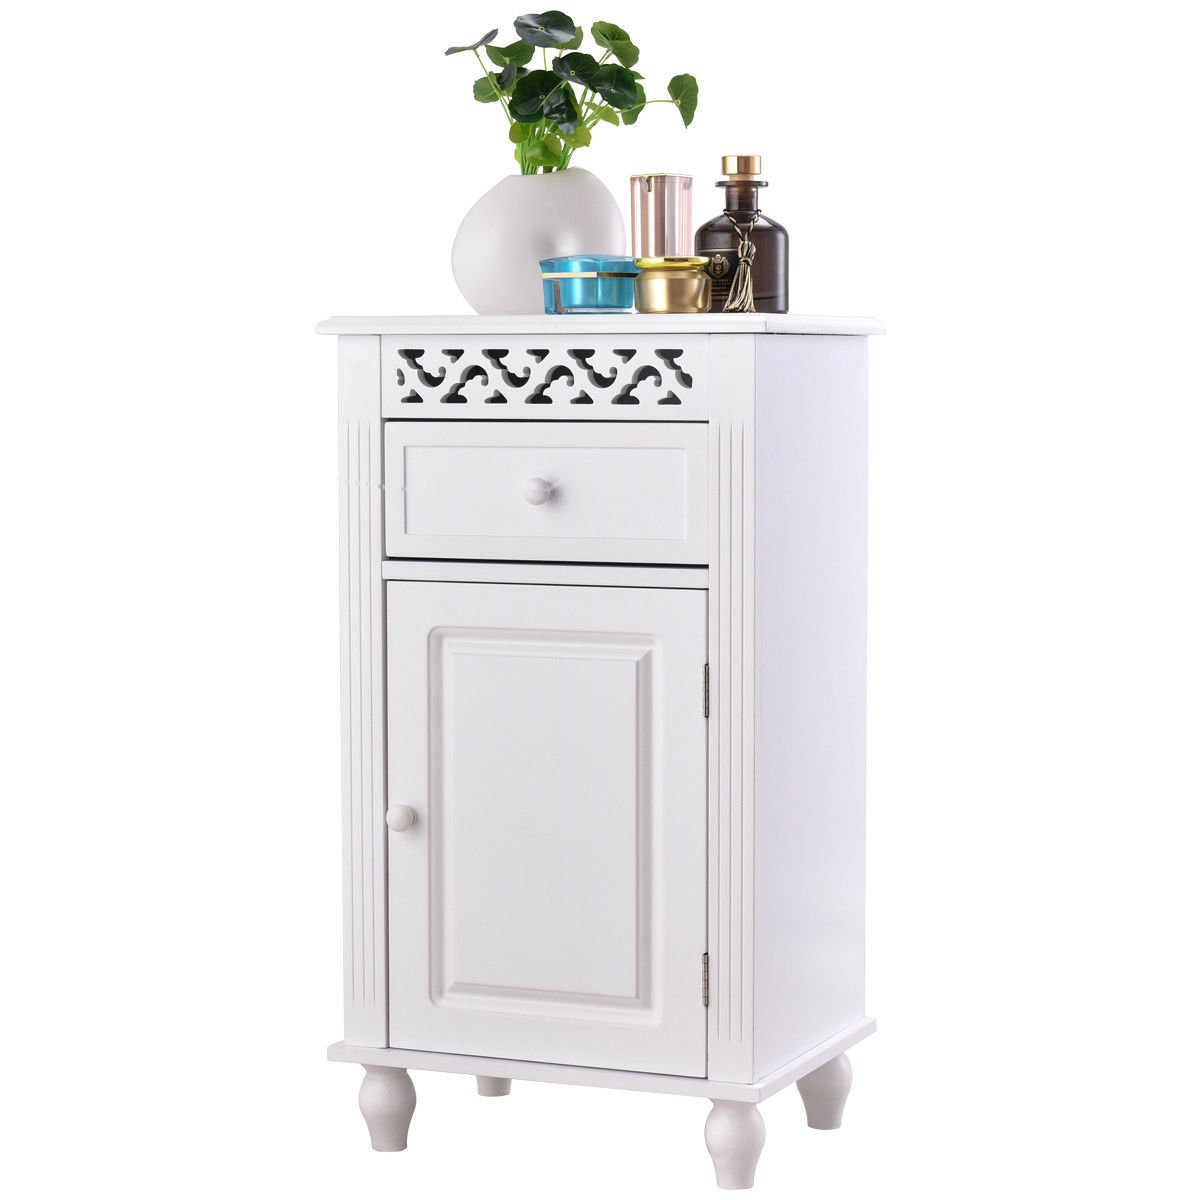 Giantex Storage Floor Cabinet W/One Cabinet Two-Layer Adjustable Shelves & One Drawer Wood Bathroom Cupboard Organizer Kitchen Collection Cabinet Shelf Nightstand Beside End Table White (1 Drawer)